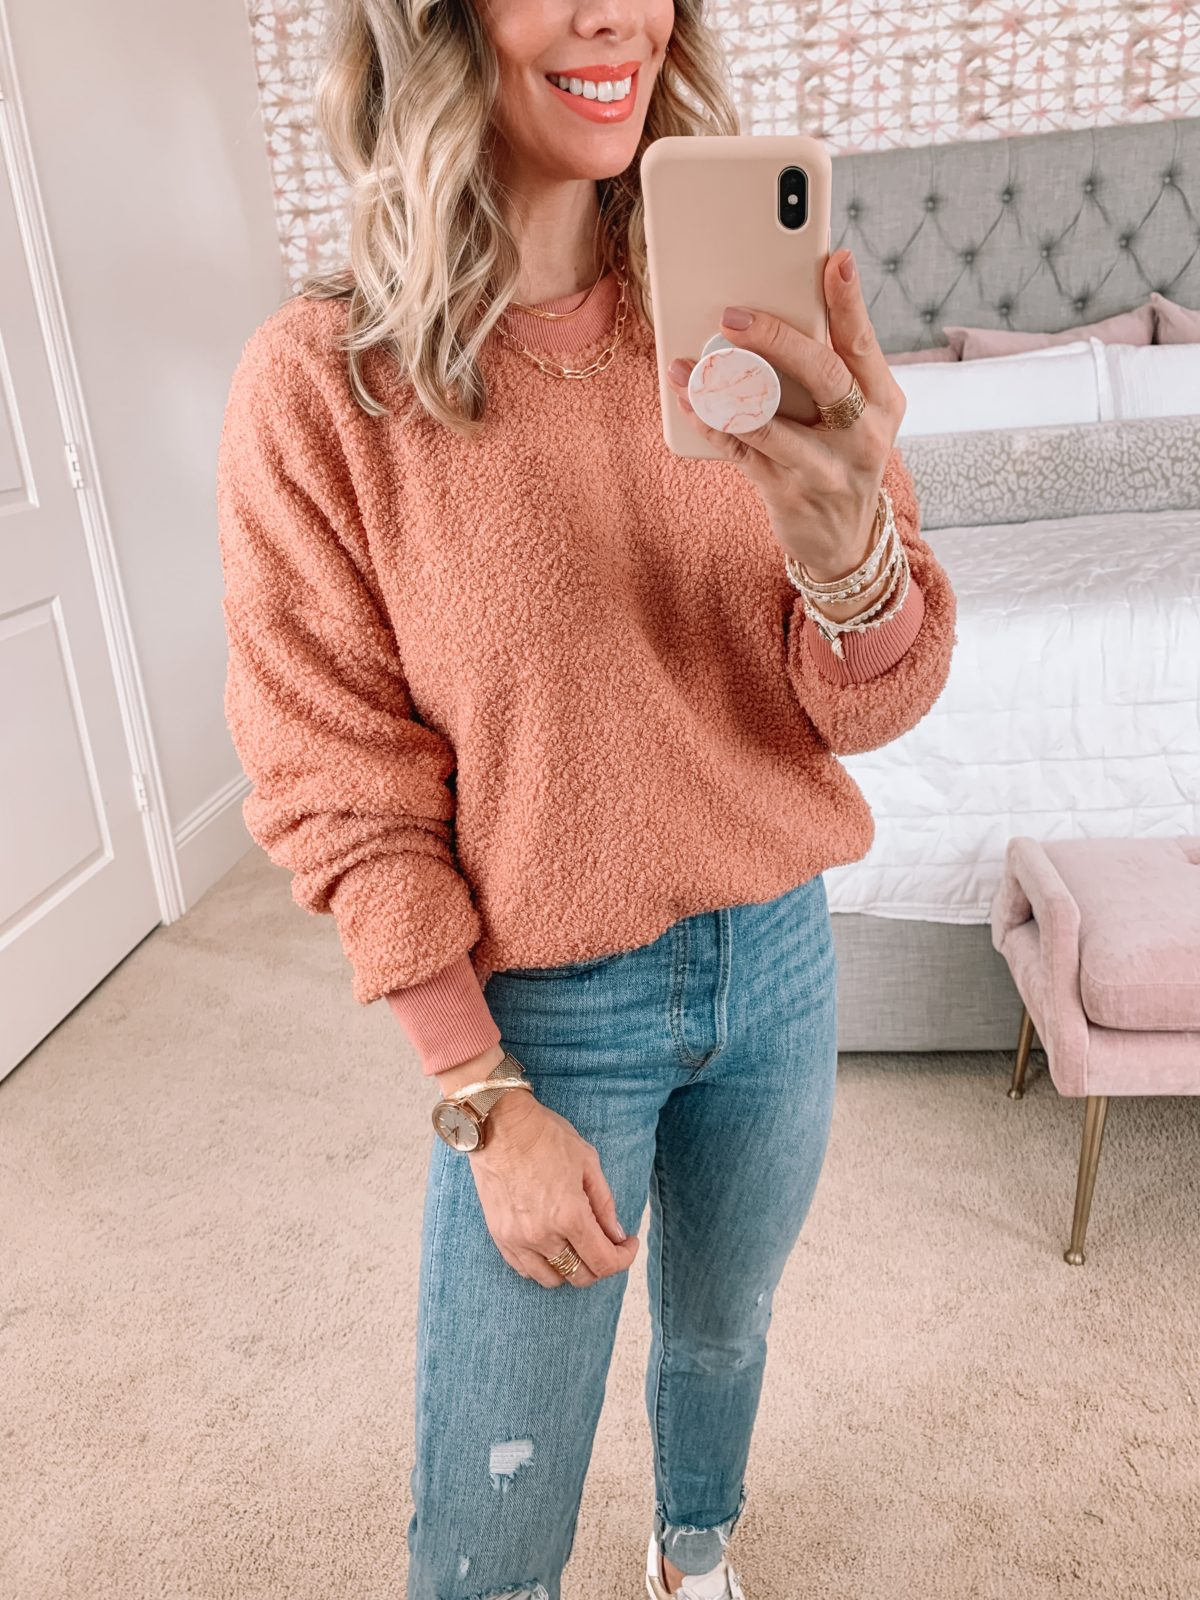 Amazon Fashion Faves, Sweater, Jeans, Sneakers